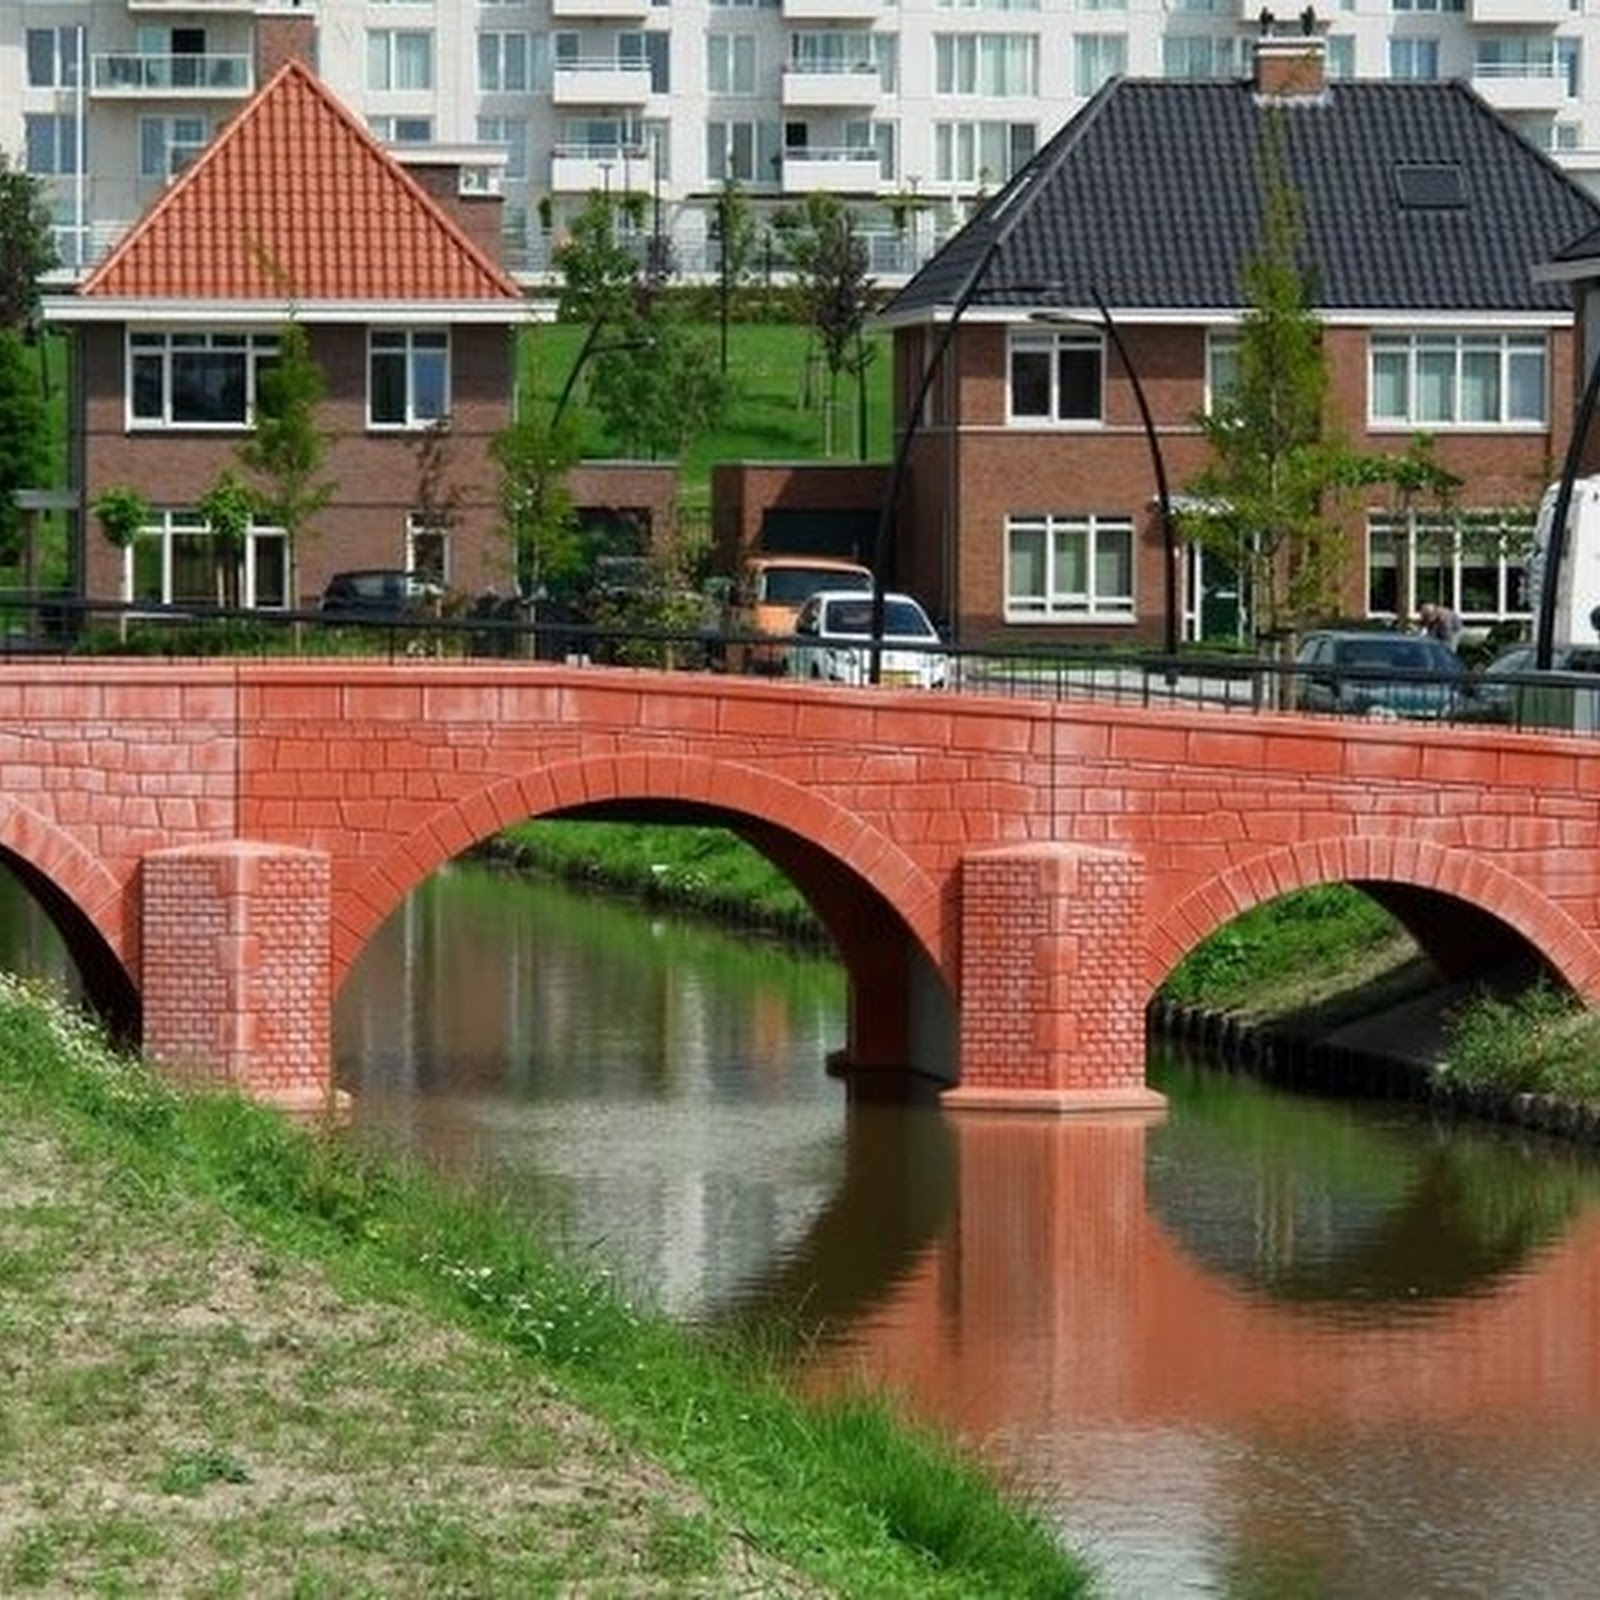 Fictional Bridges on Euro Banknotes Become Real